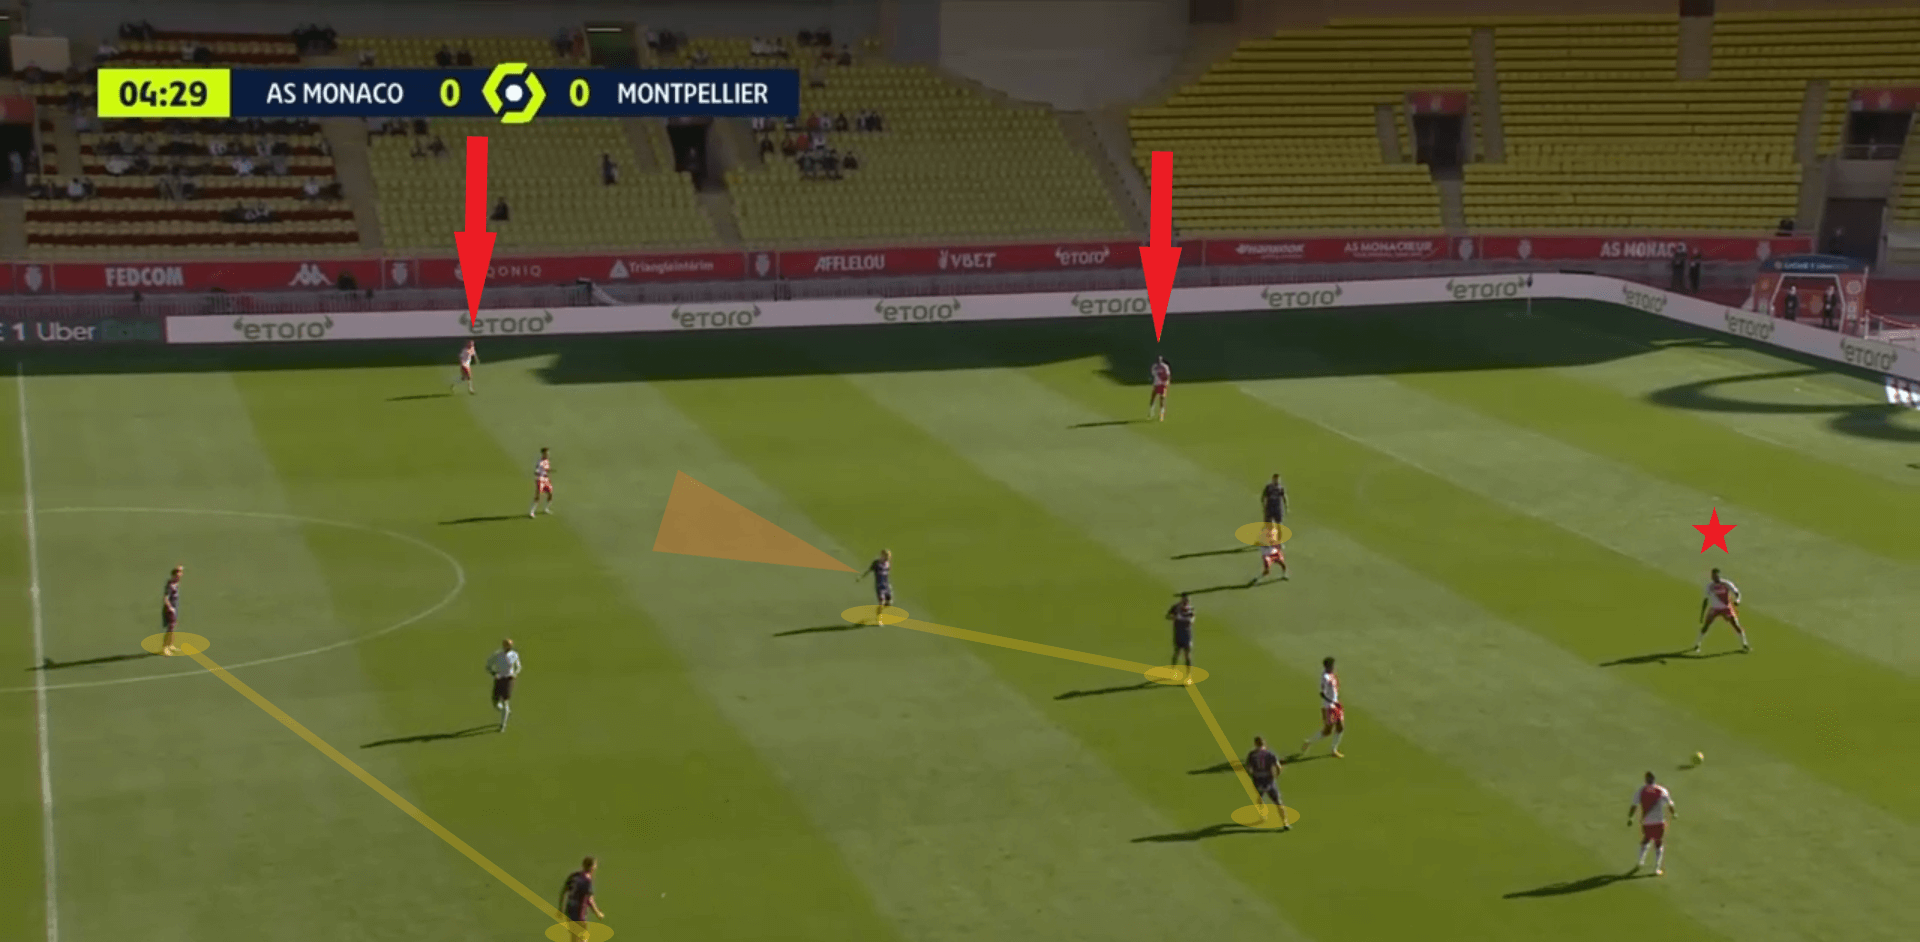 Ligue 1 2020/21: Monaco vs Montpellier – tactical analysis tactics